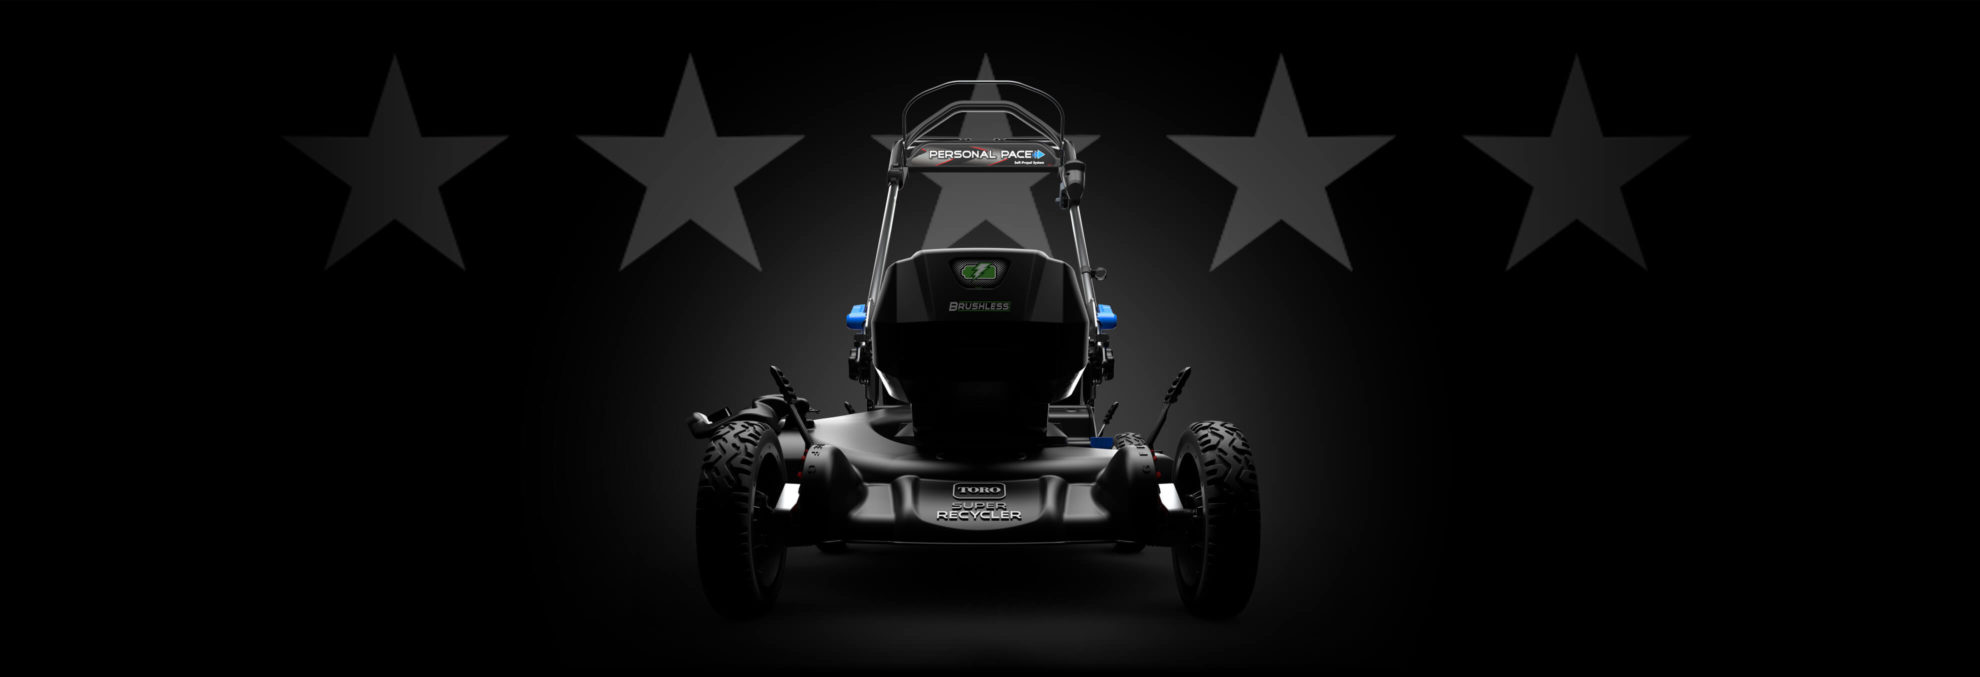 mower with review stars